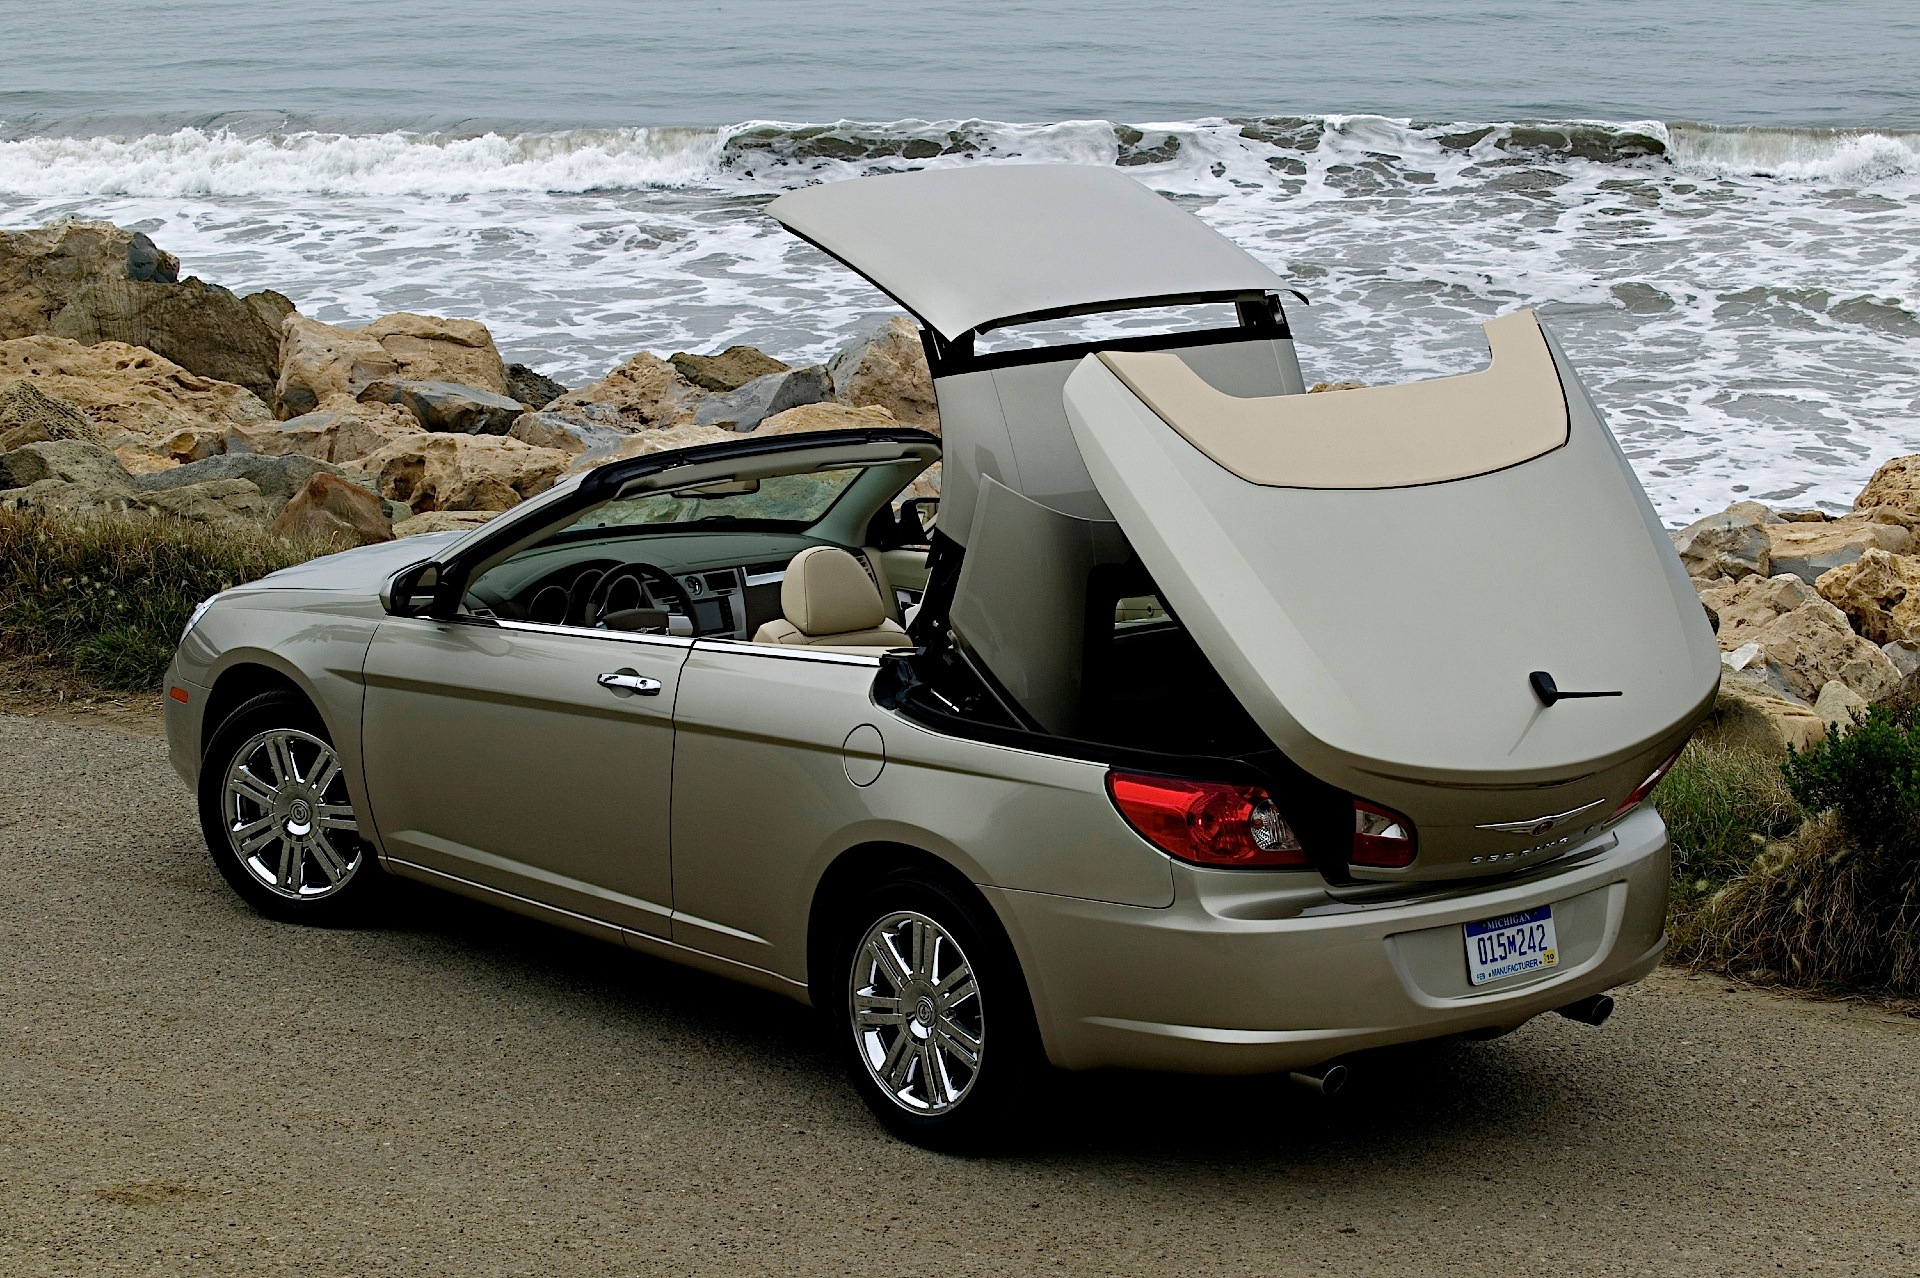 chrysler sebring convertible specs 2007 2008 2009 2010 autoevolution. Black Bedroom Furniture Sets. Home Design Ideas